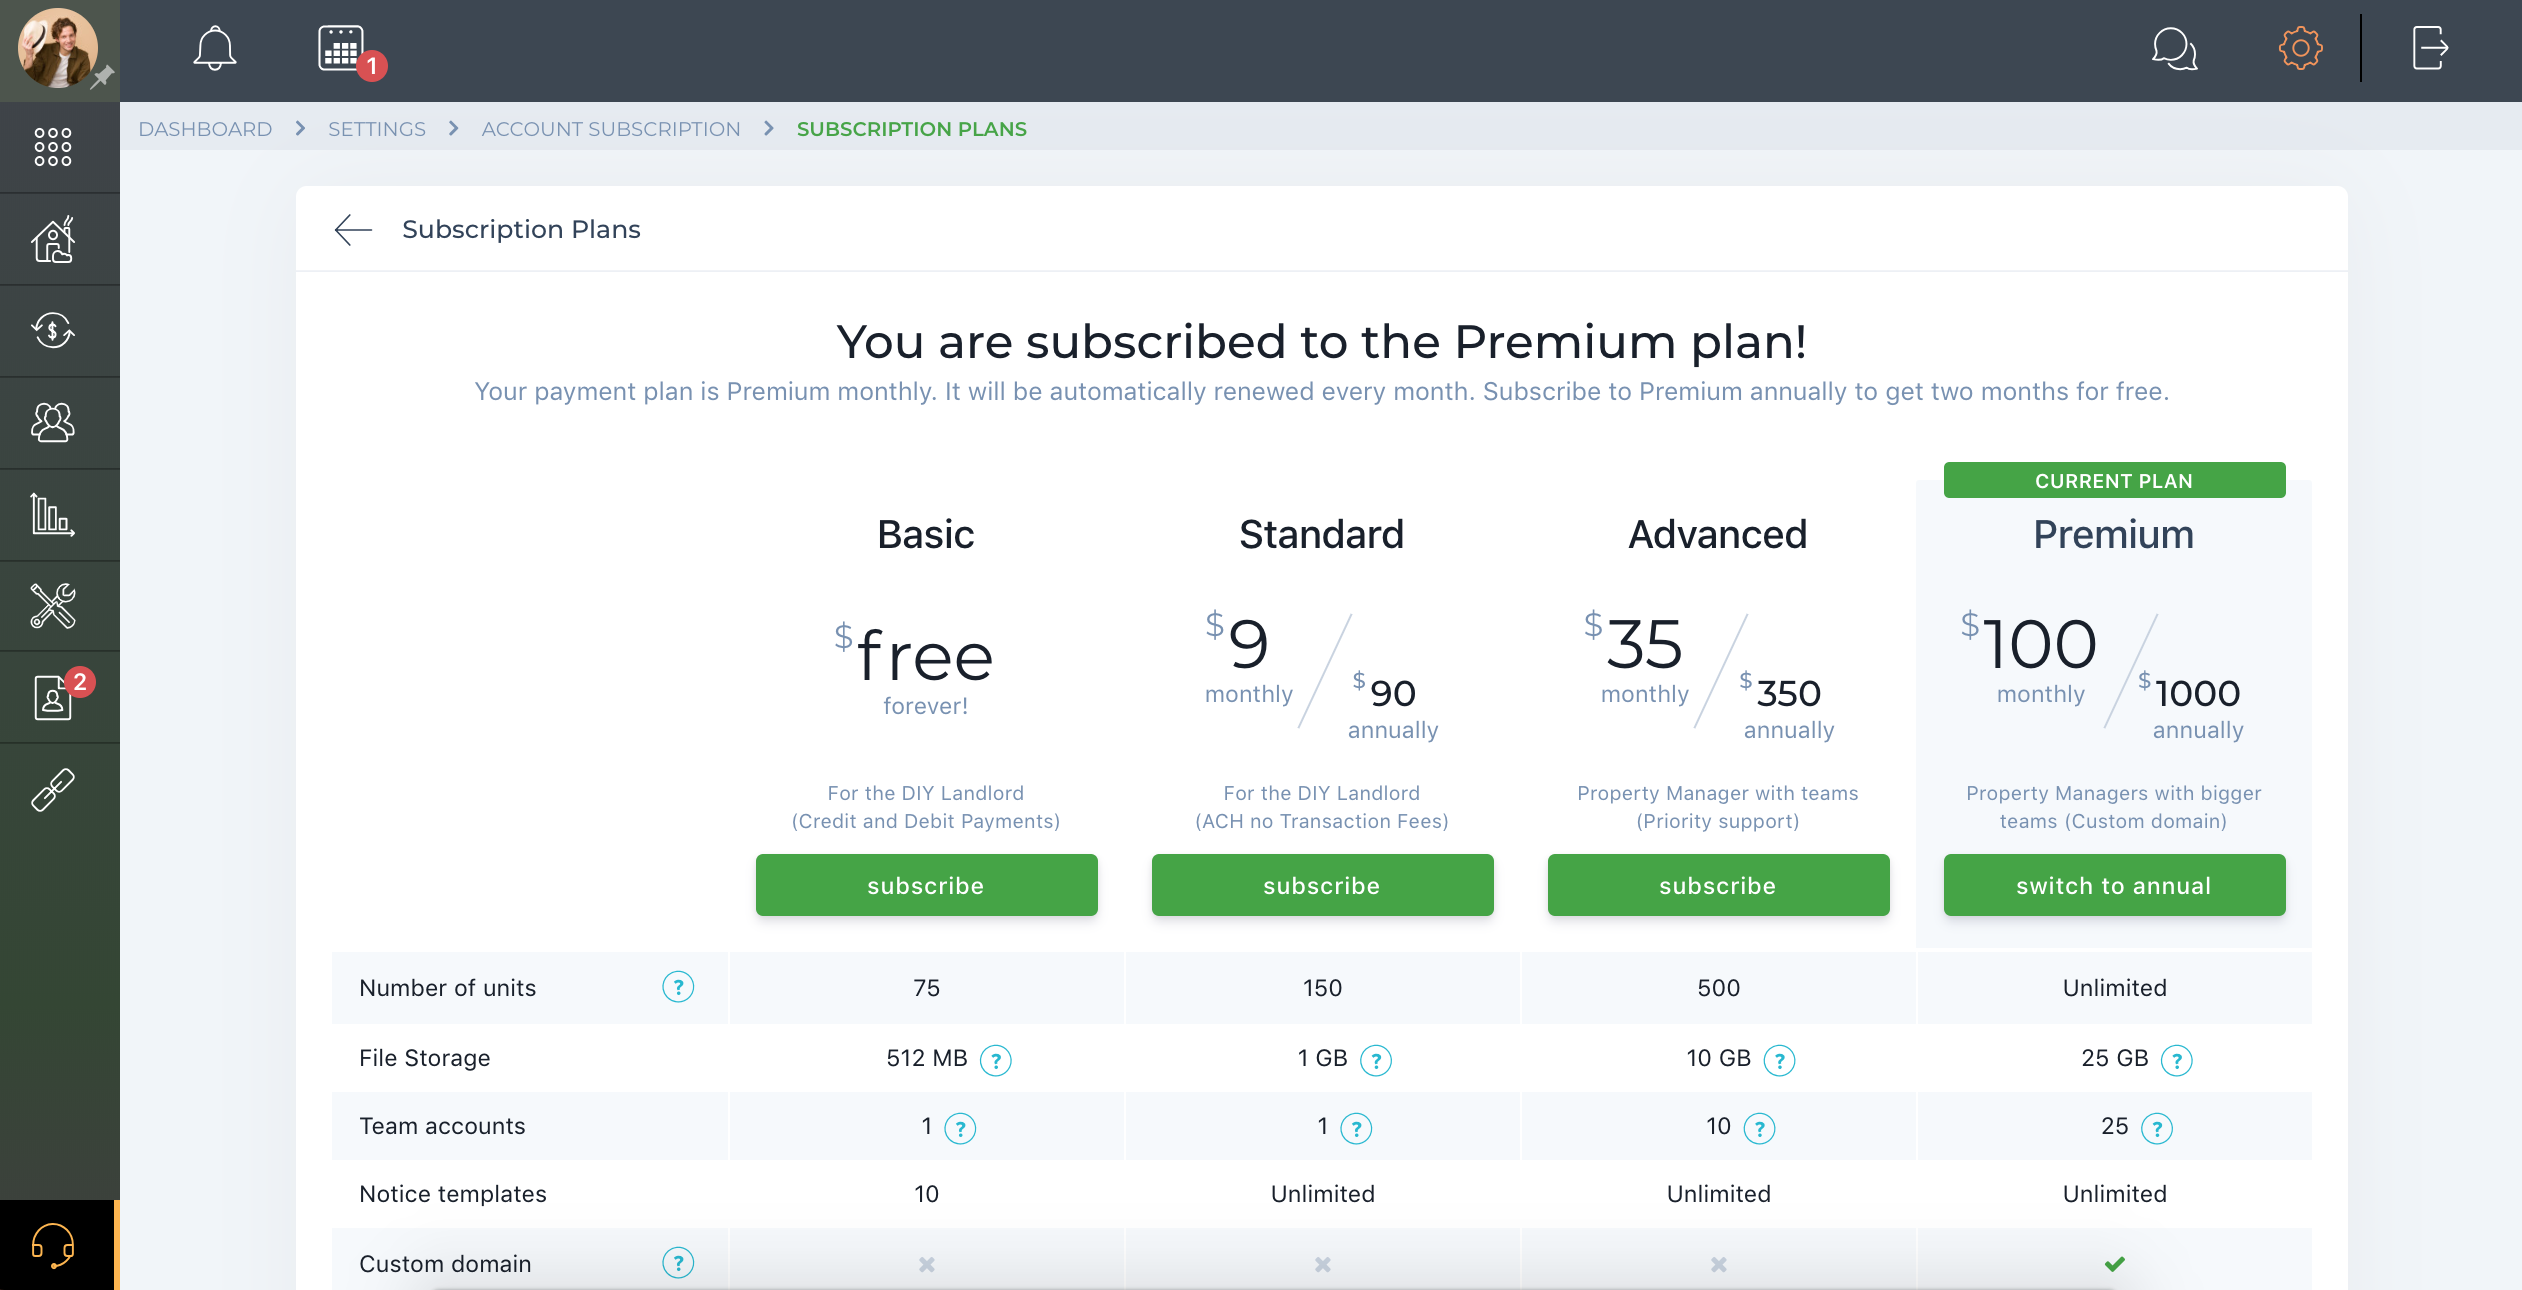 Subscription plans & Pricing